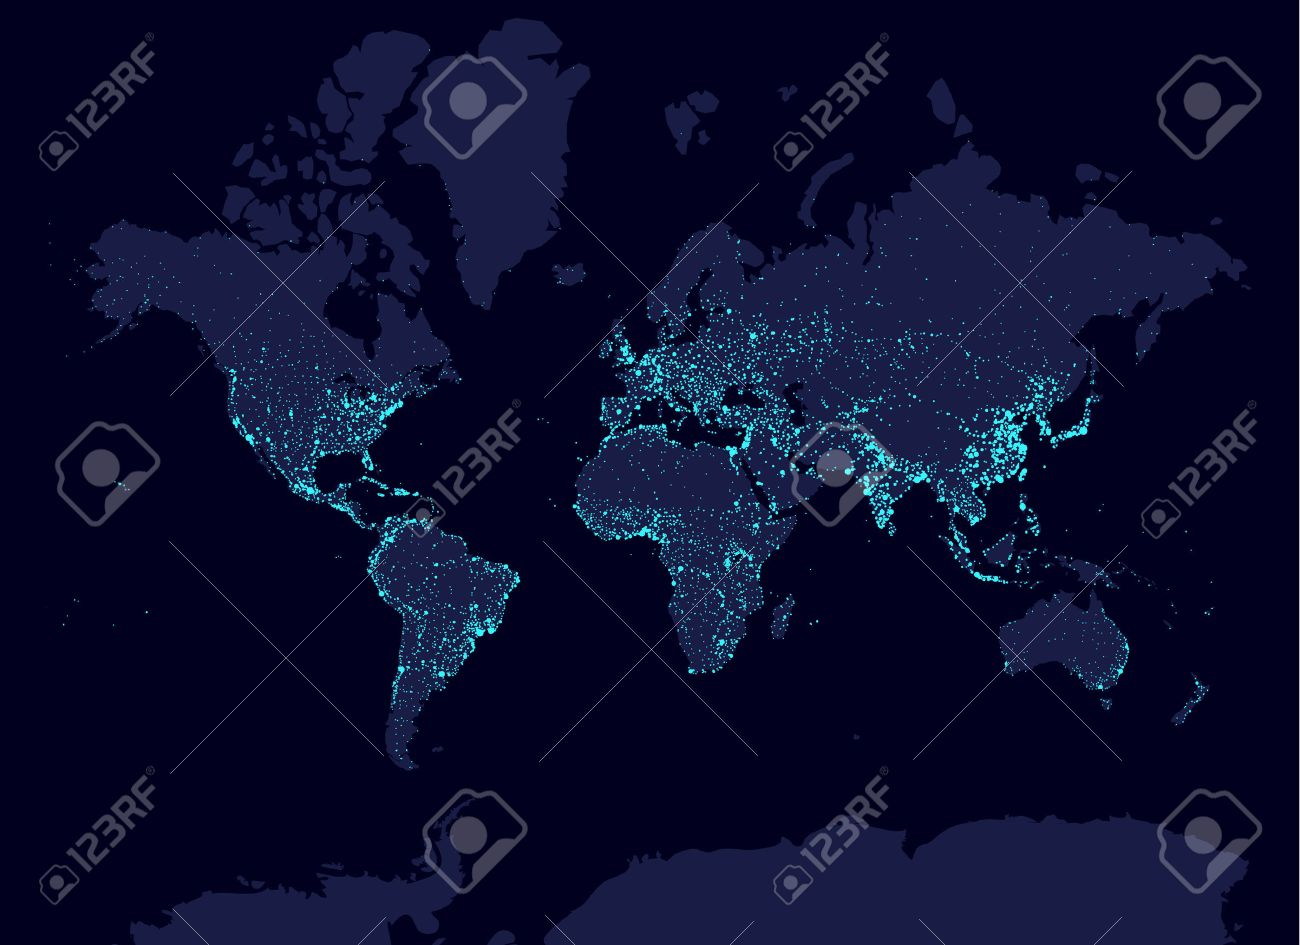 Earth at night world map earth day concept world population earth at night world map earth day concept world population biggest cities glow gumiabroncs Images